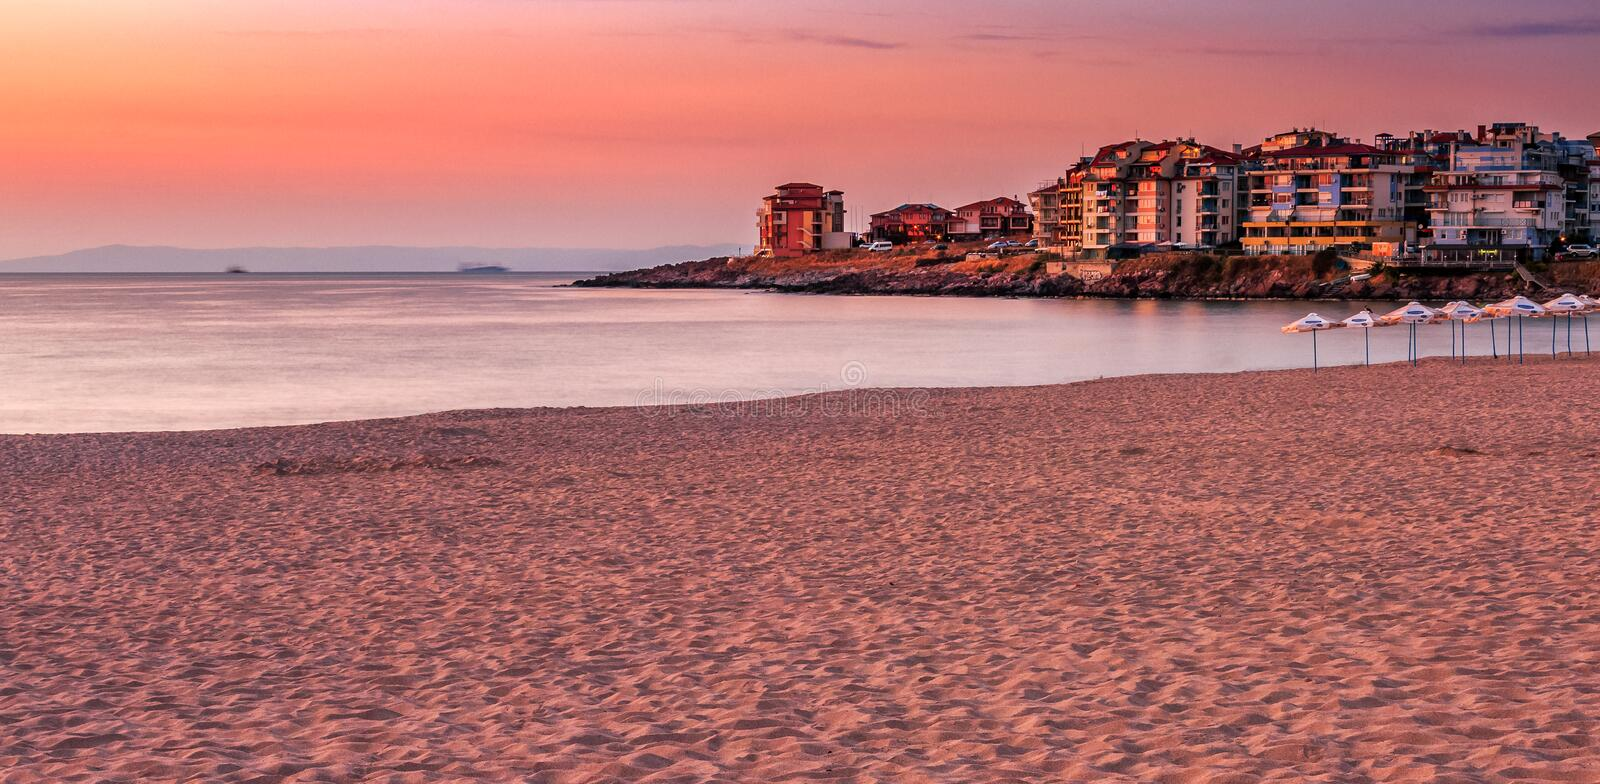 Sunrise at the beach of Sozopol. SOZOPOL, BULGARIA - SEPTEMBER 11, 2013: sunrise on sandy city beach in mellow season. Beautiful and warm weather on the shores royalty free stock photos